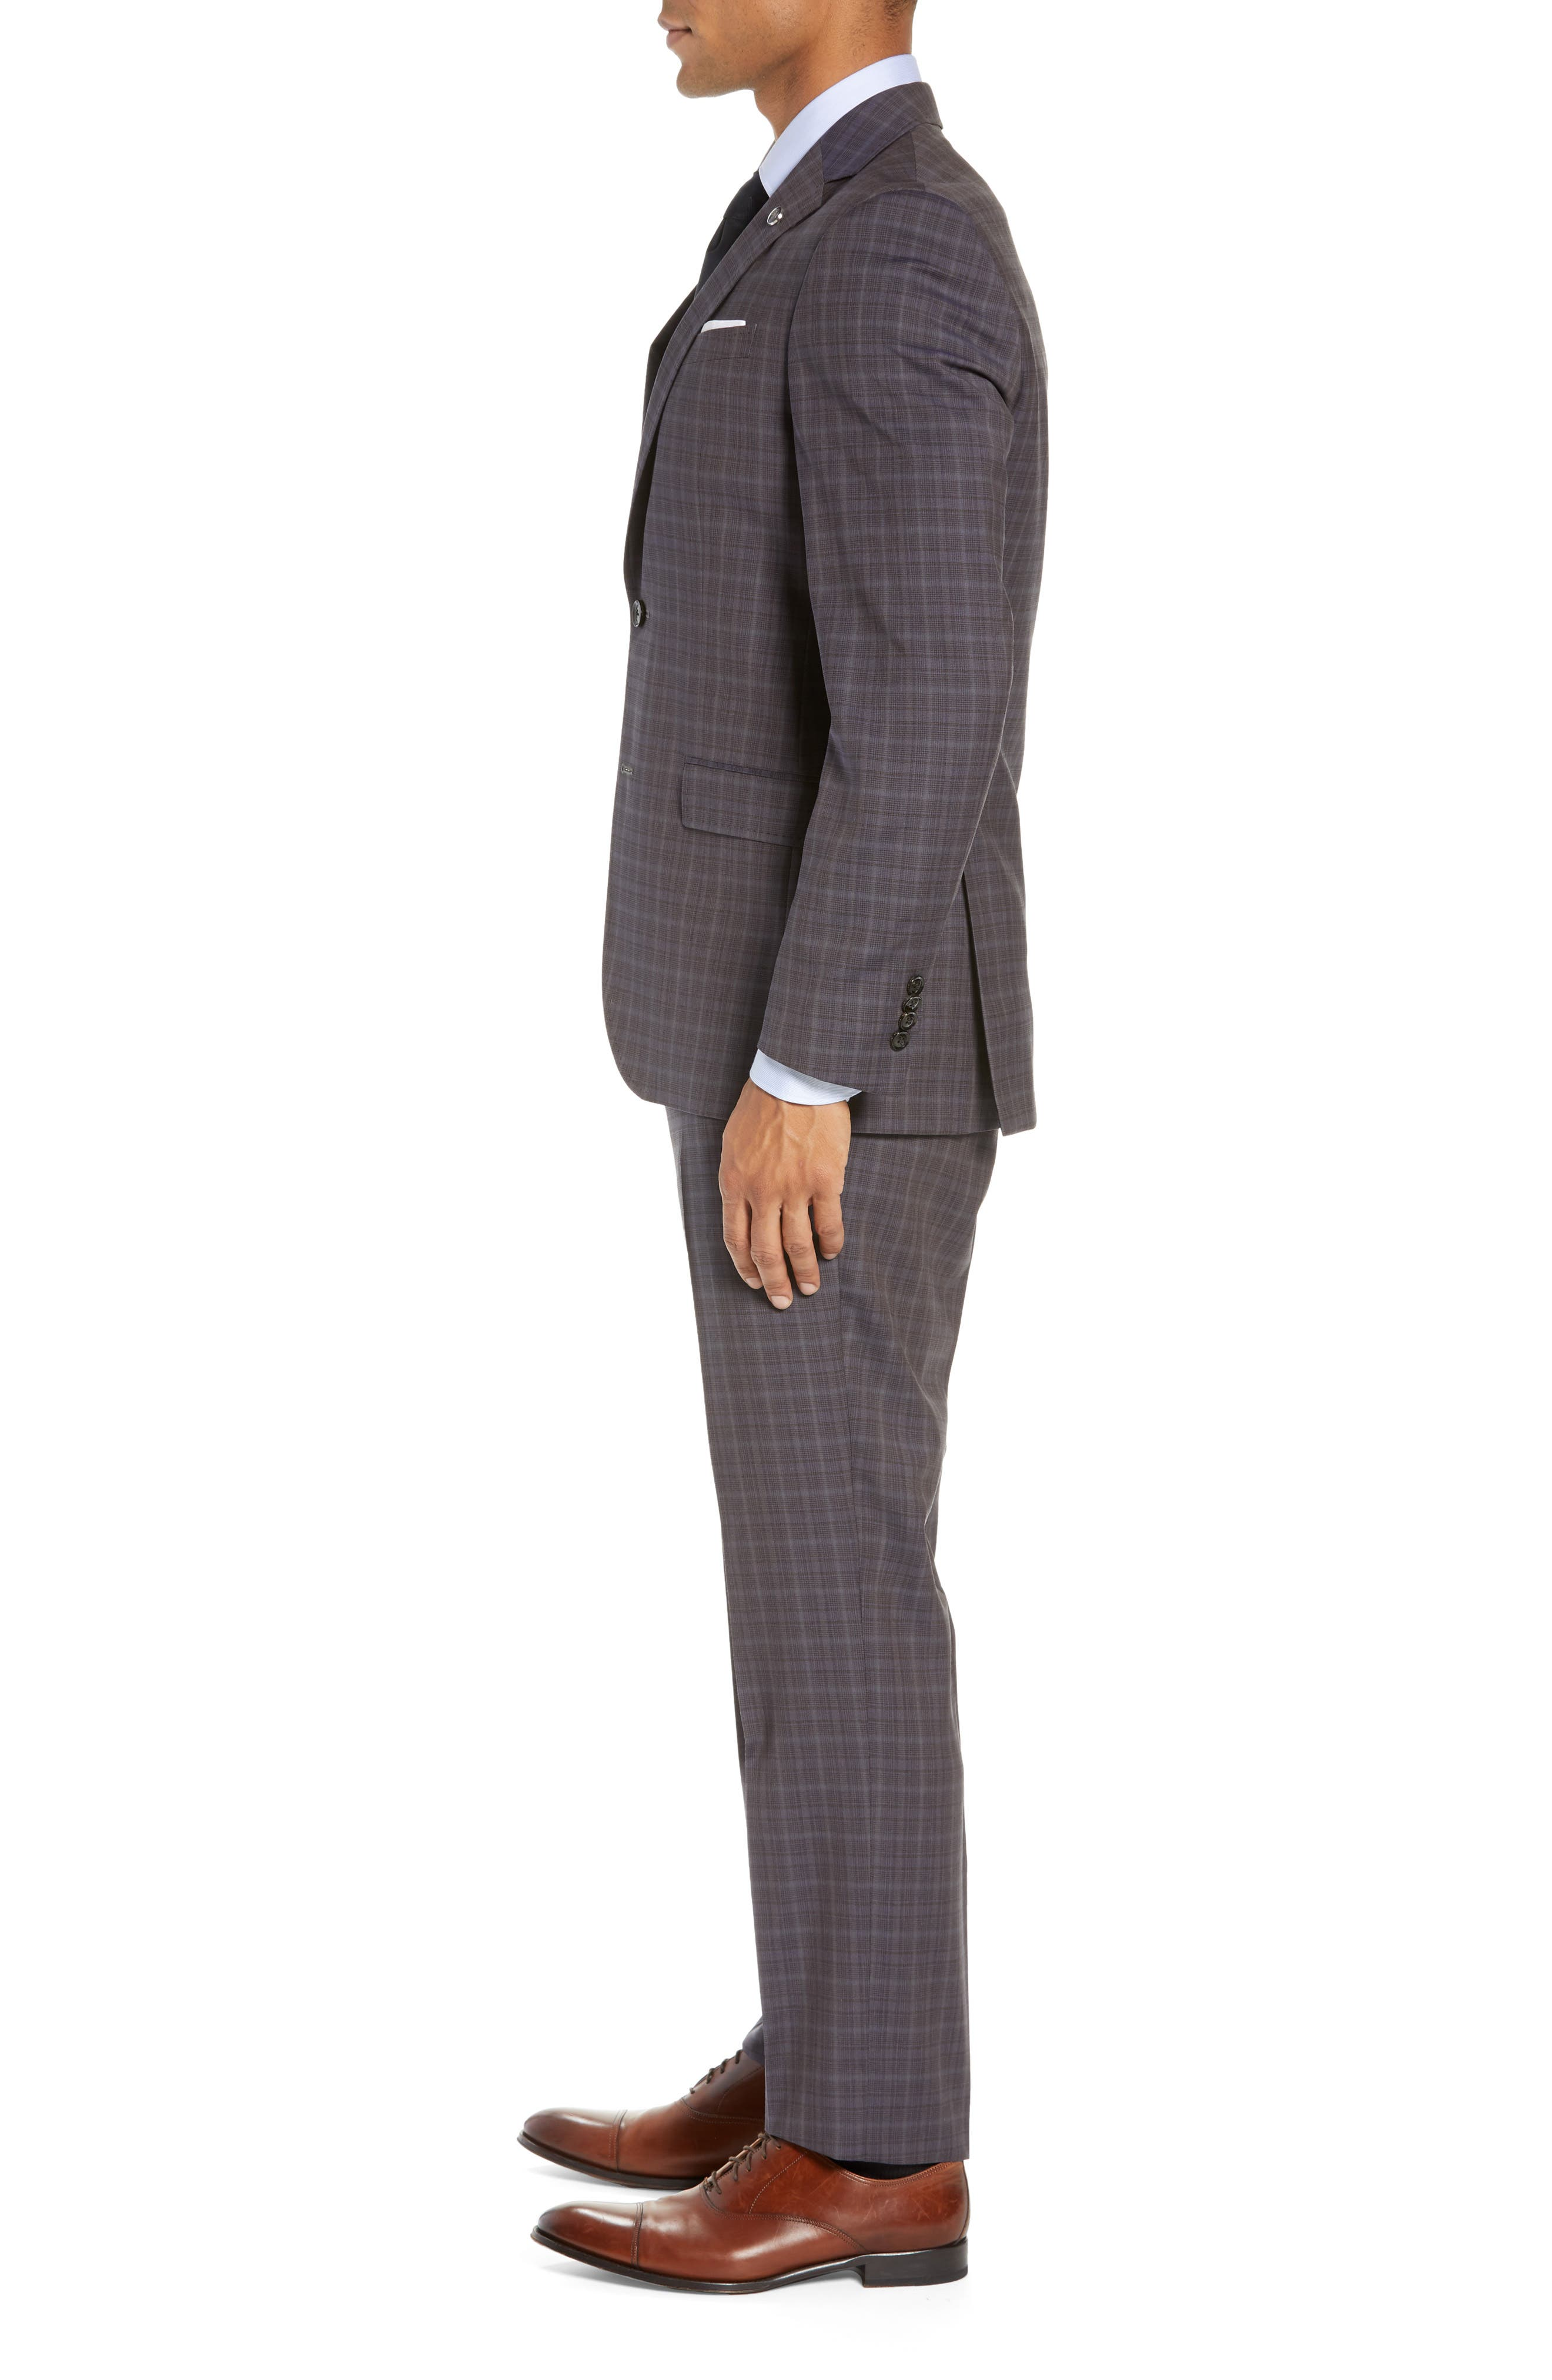 TED BAKER LONDON,                             Jay Trim Fit Plaid Wool Suit,                             Alternate thumbnail 3, color,                             TAUPE